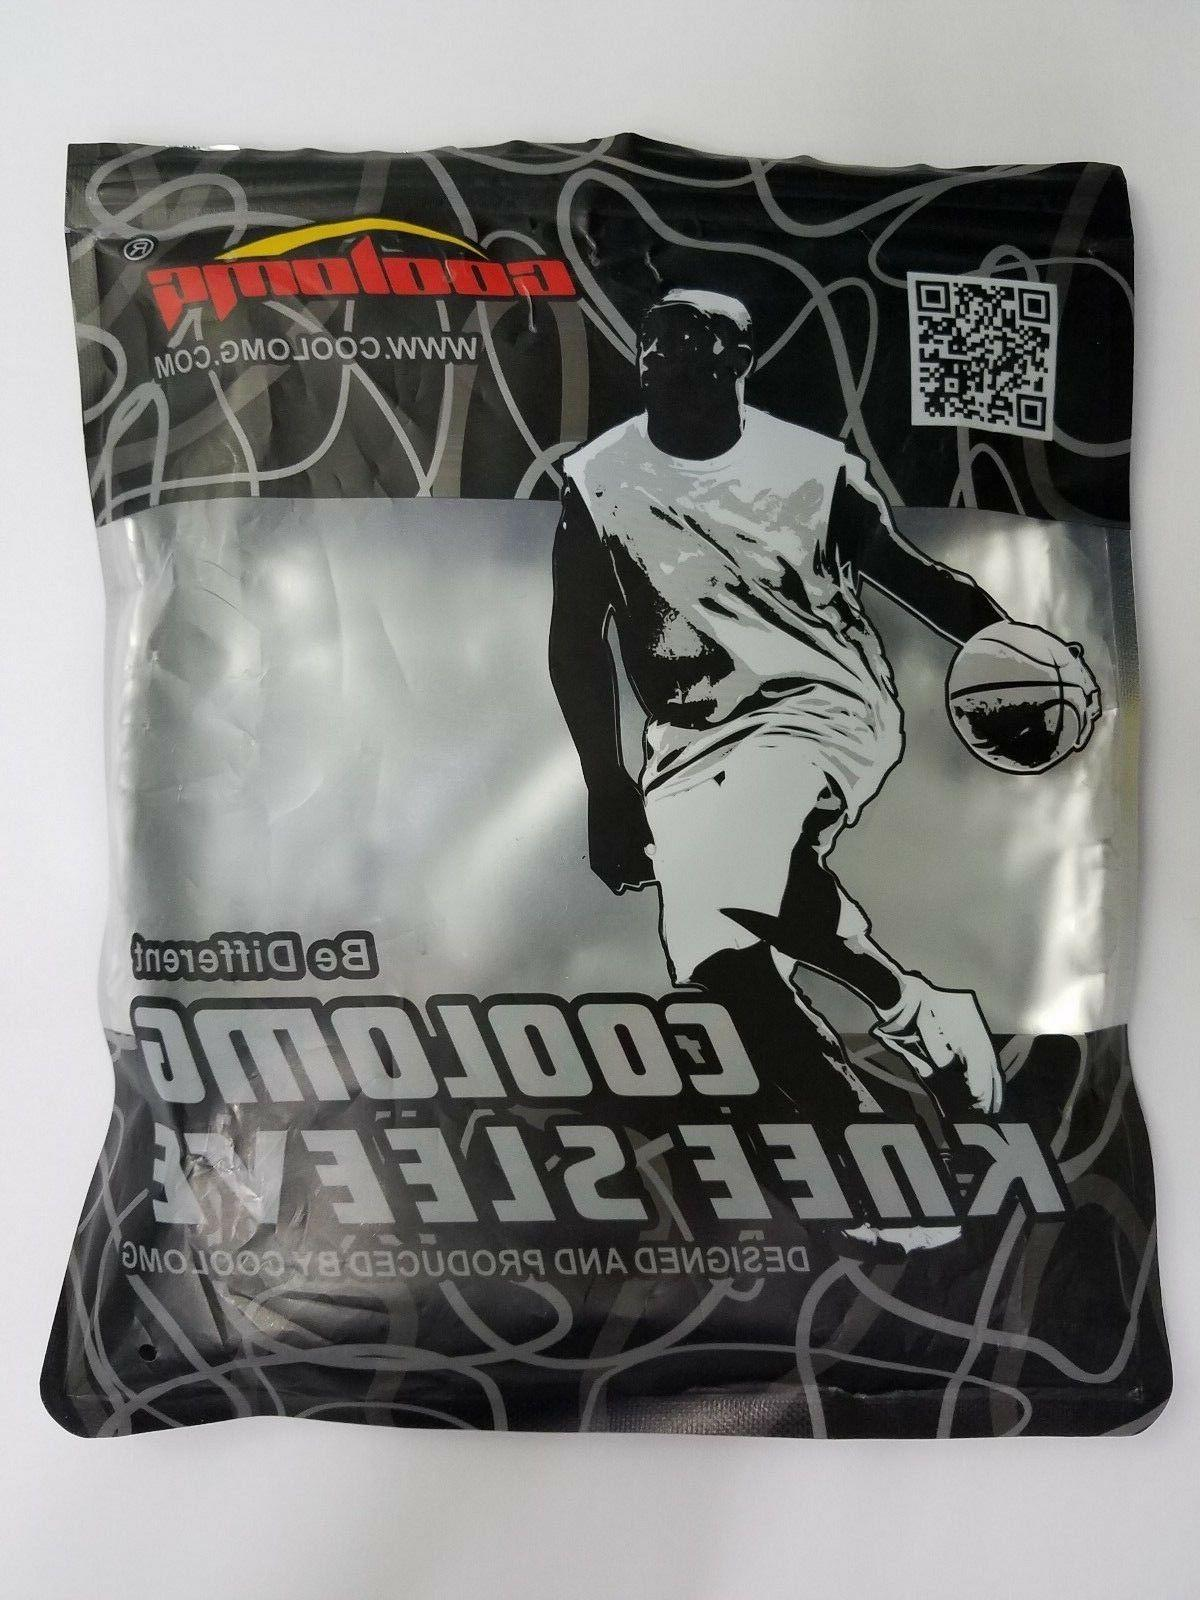 coolomg knee sleeve black extra small 1 per package Sports